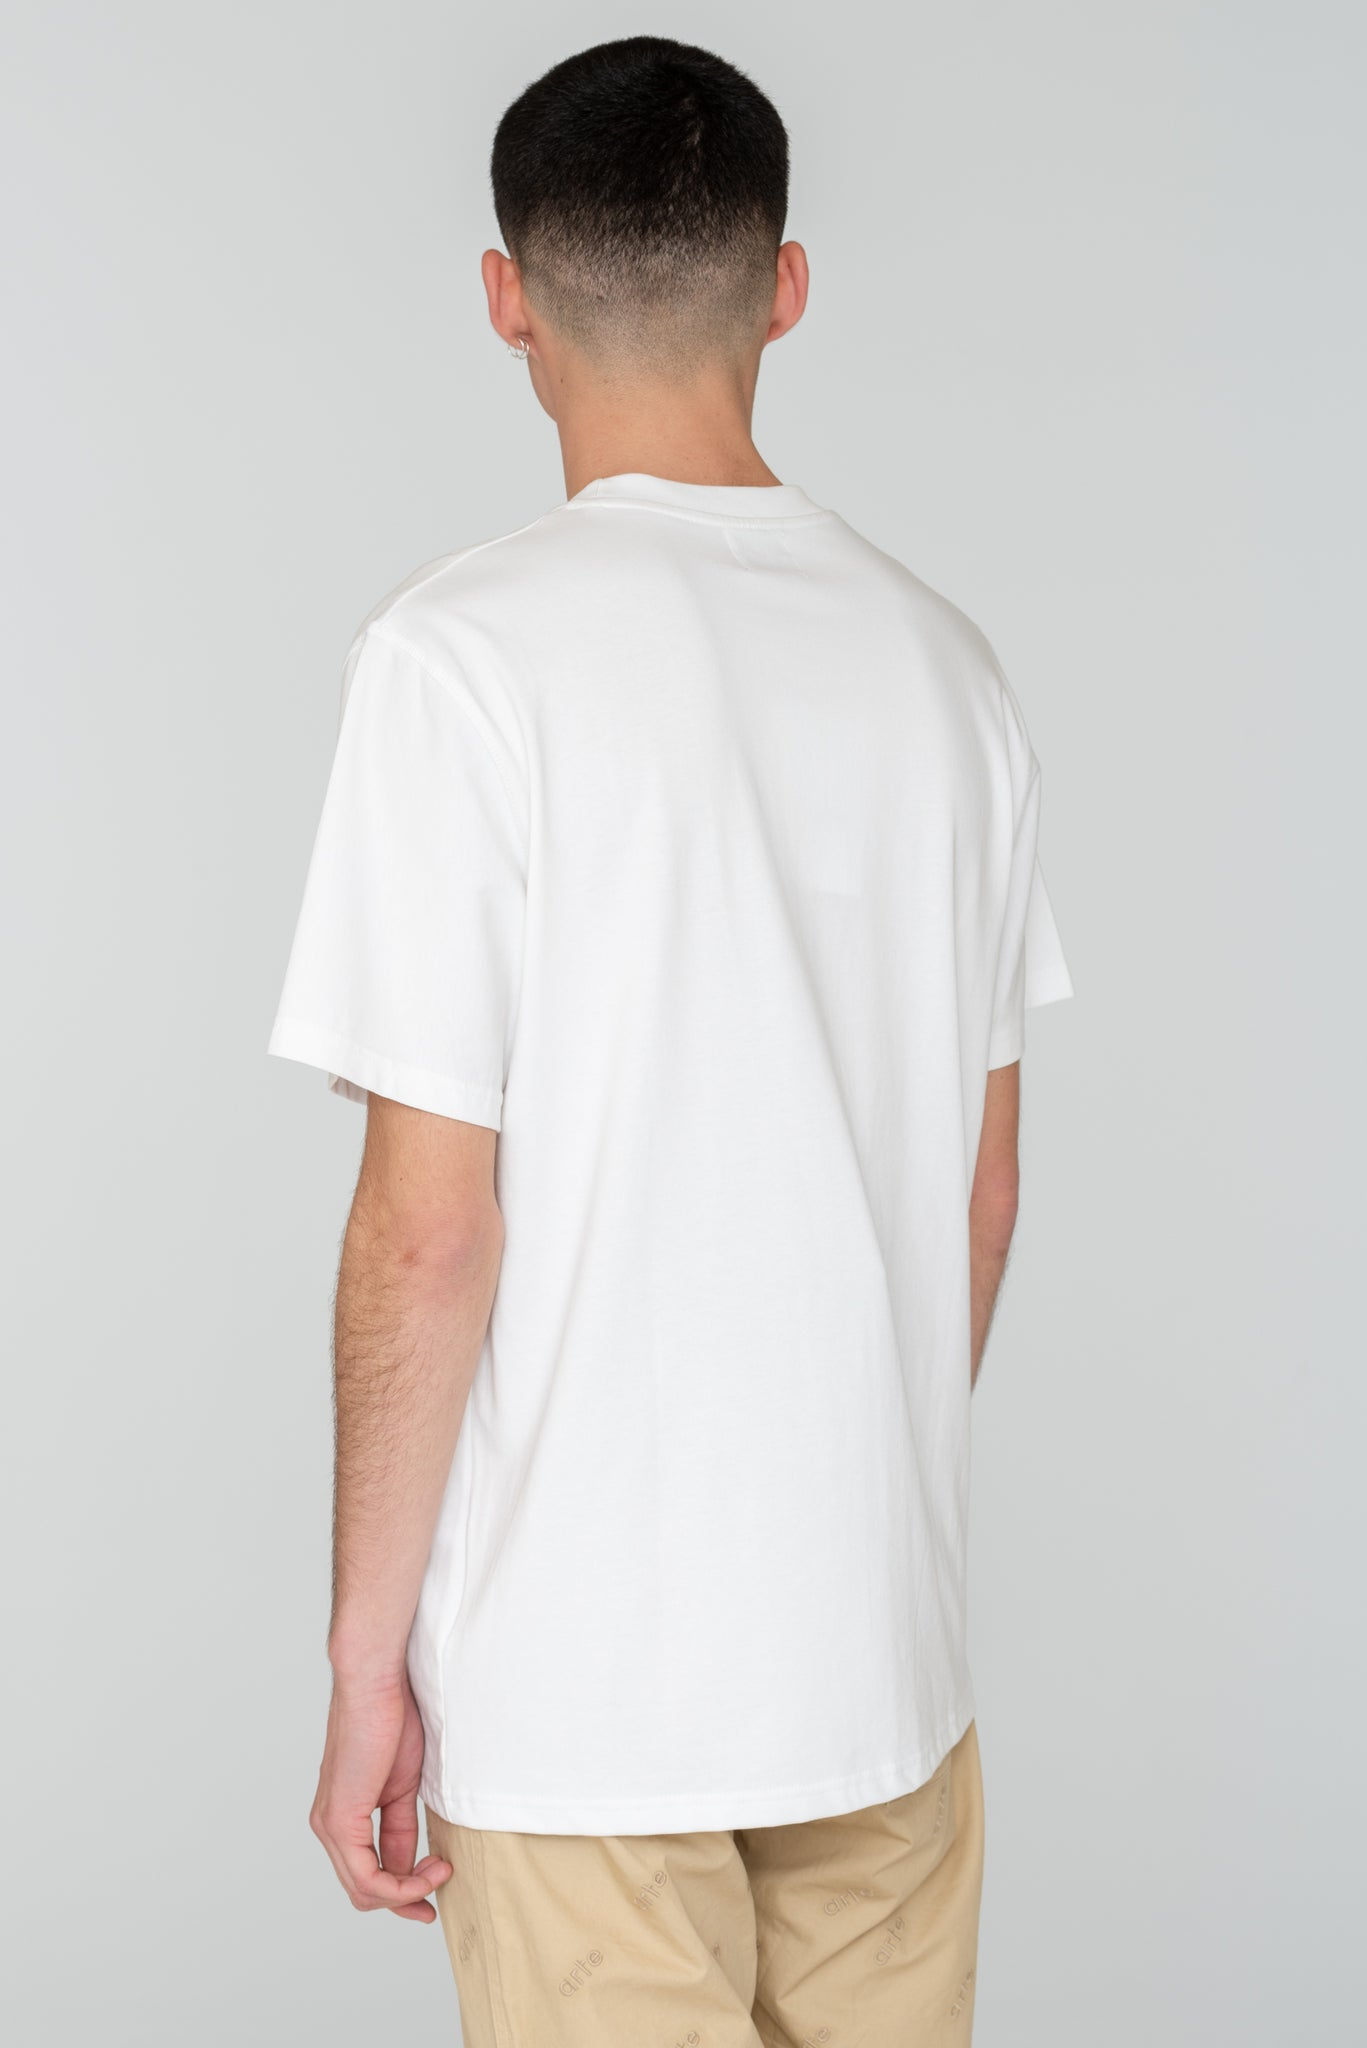 Troy Heart Patch White T-shirt - Arte Antwerp